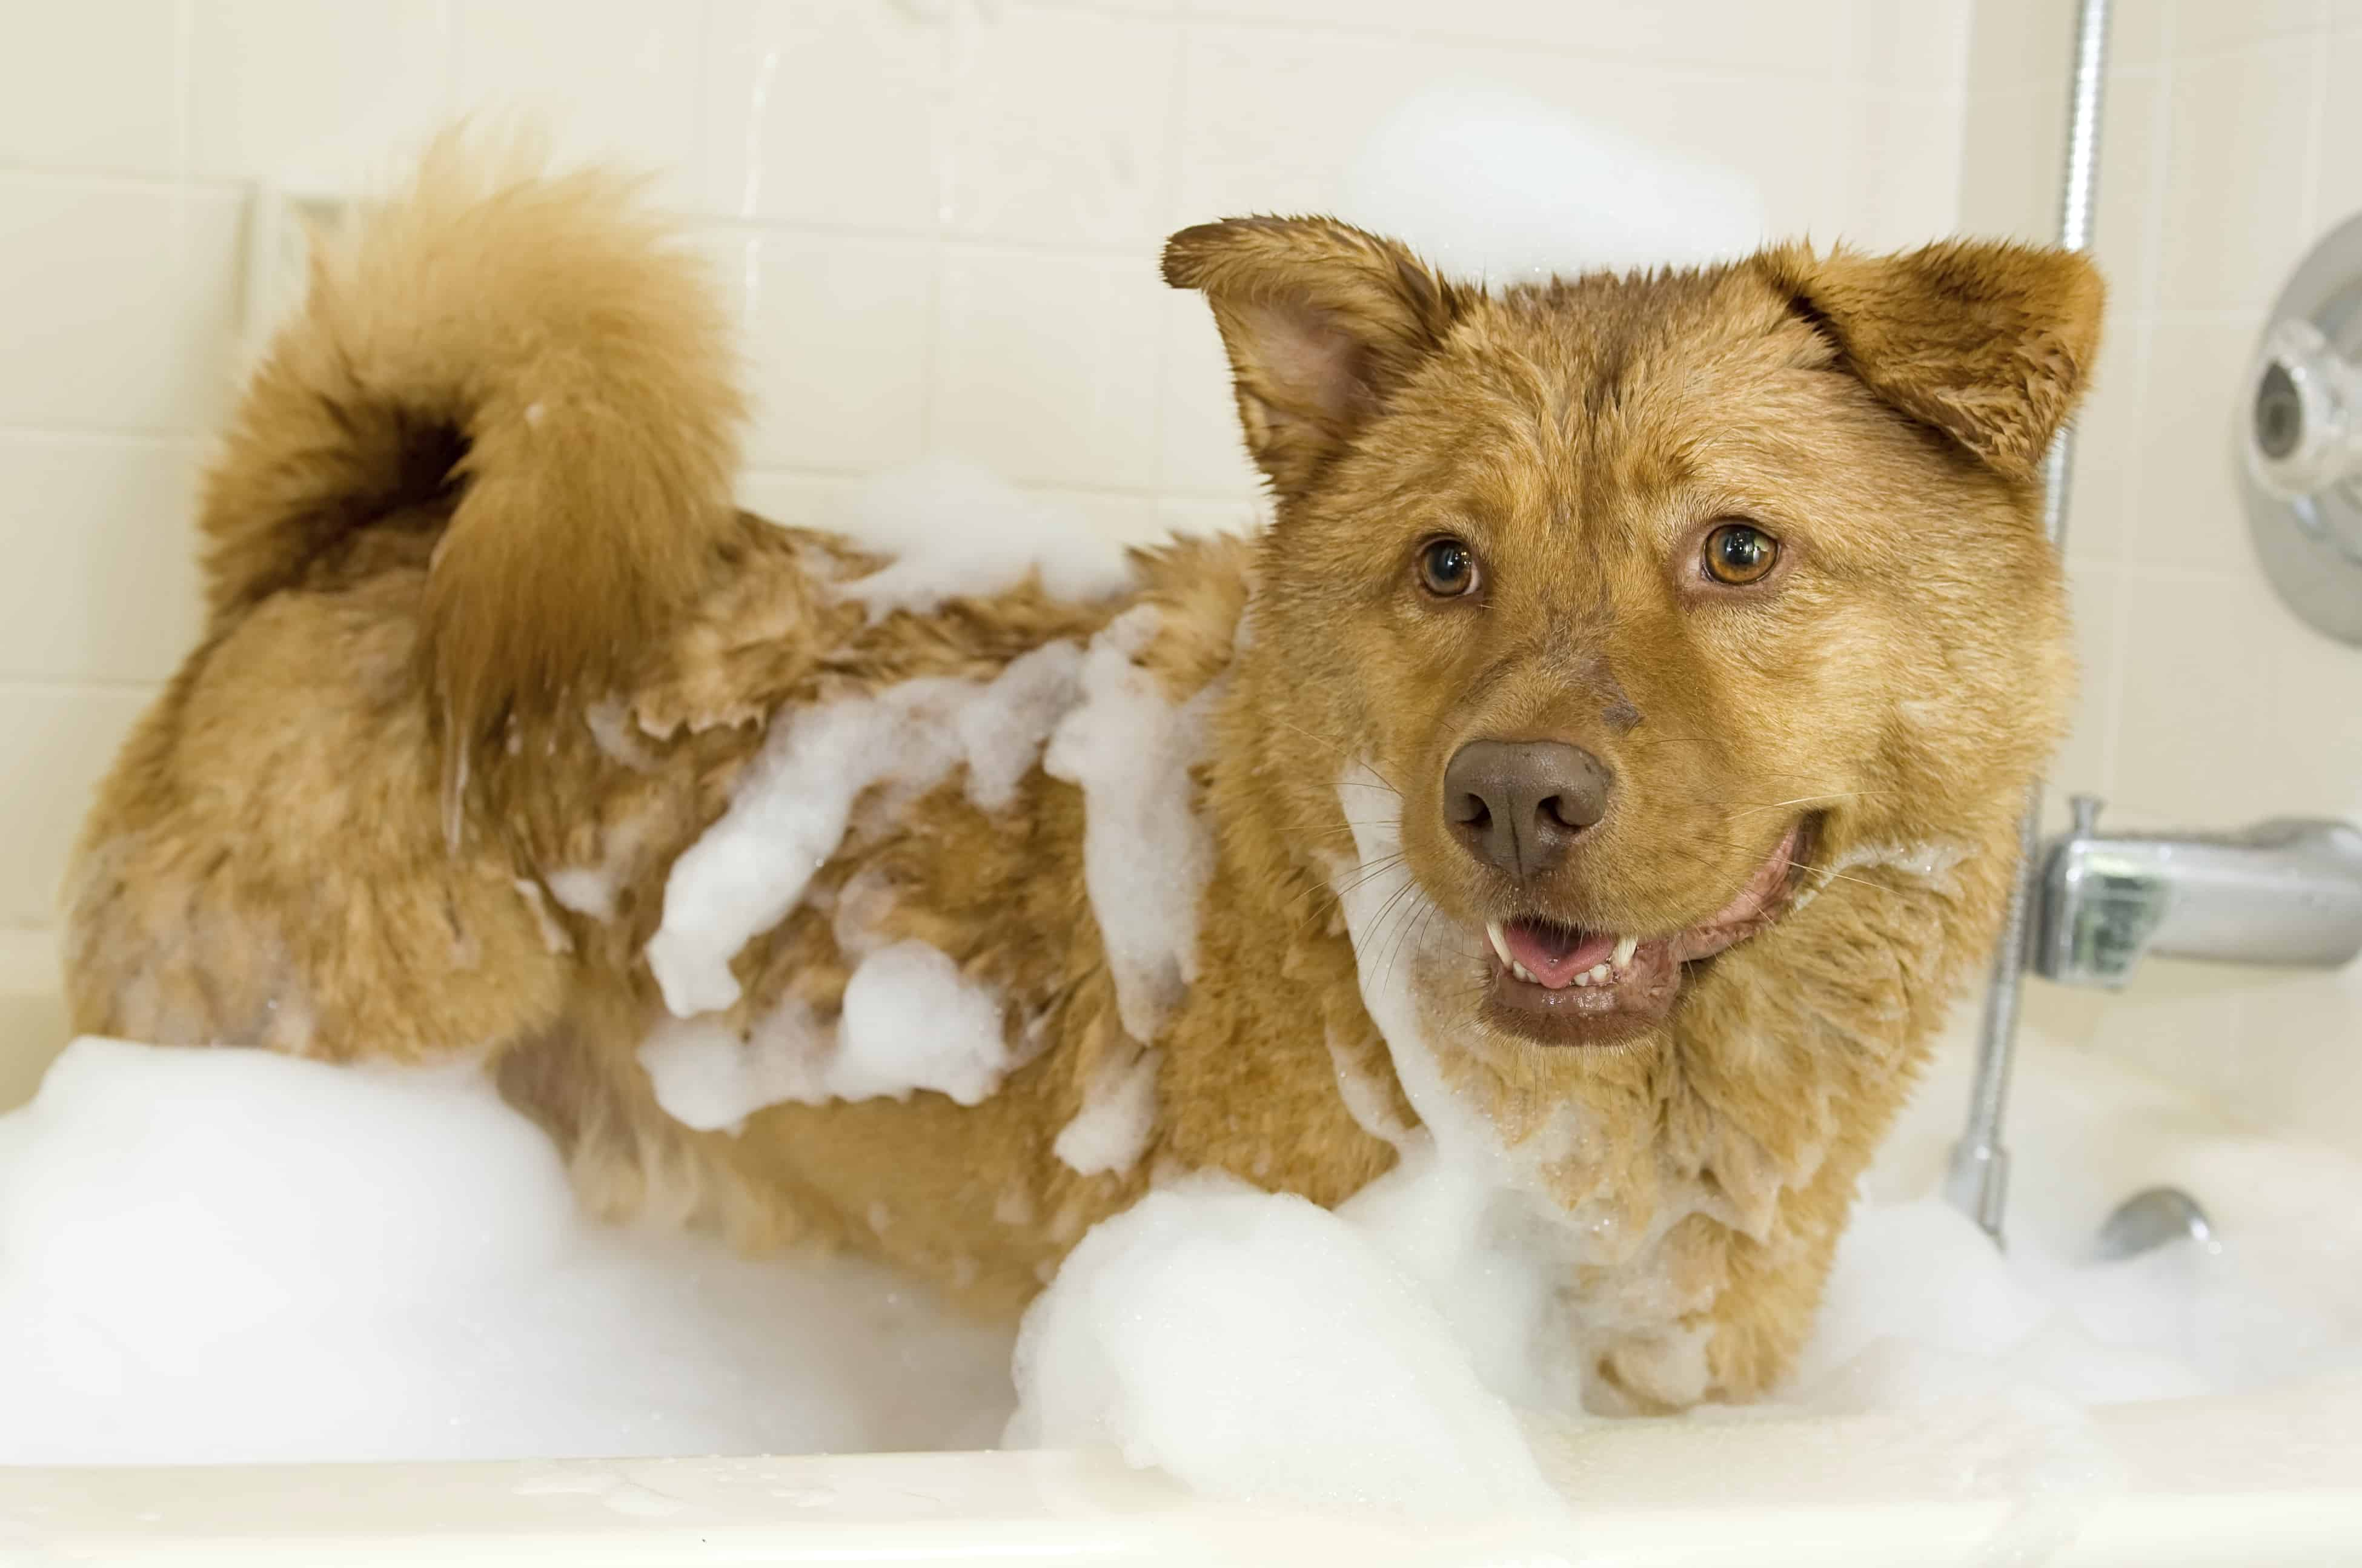 Sleek Itchy Skin How Often Should You Ba A Dog Hotspots I Have A Shaggy How Often Should You Ba Your Dog Dog Grooming Q A Session Dog Police Dog Trainer School How Often Should You Ba A Dog bark post How Often Should You Bathe A Dog